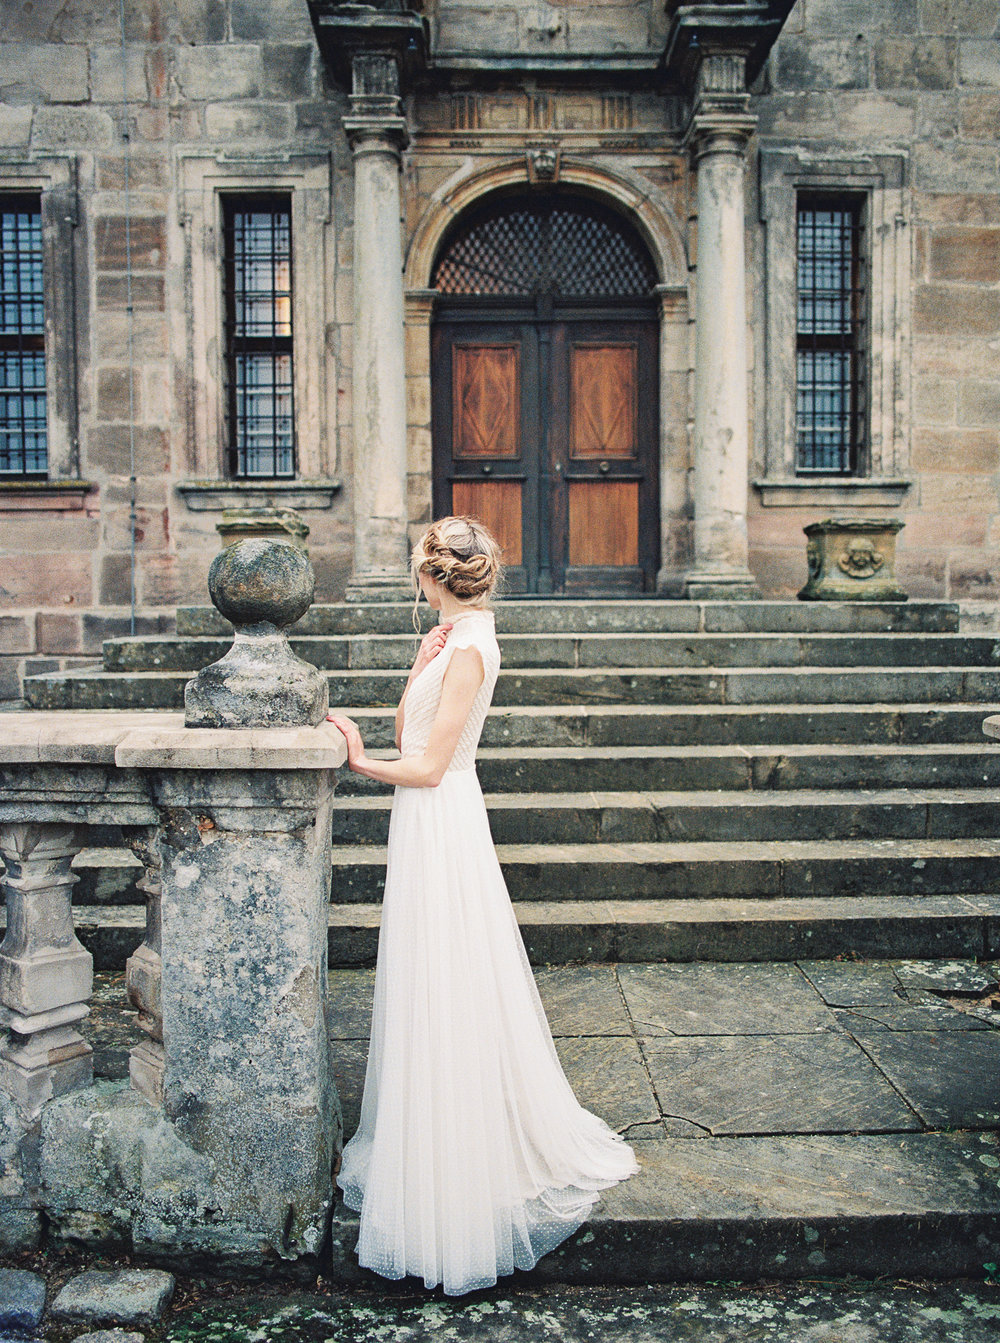 Elegant Nurnberg Germany Wedding Inspiration by Tanja Kibogo - fine art film destination wedding photographer15.JPG